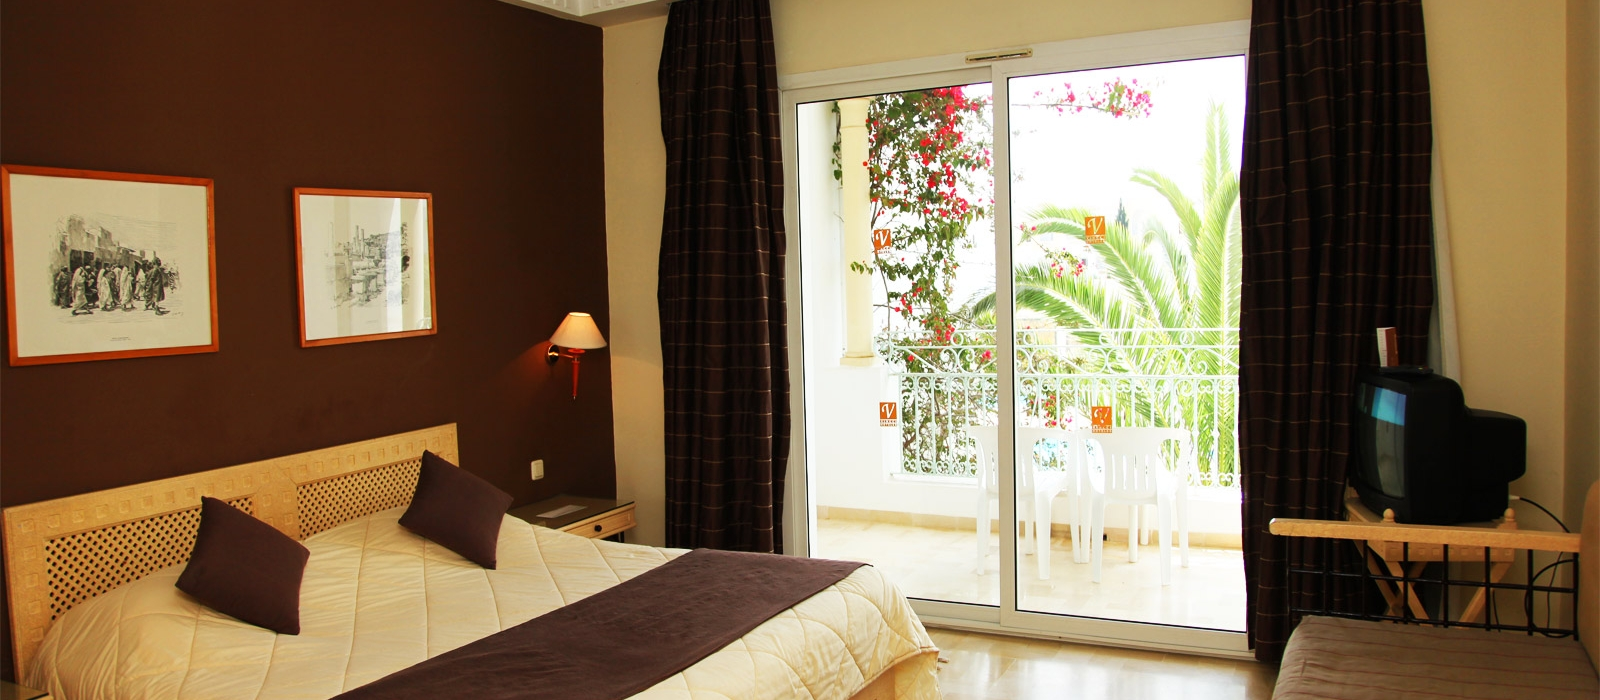 Rooms Hotel Hammamet Flora Park - Vincci Hotels - Triple Room